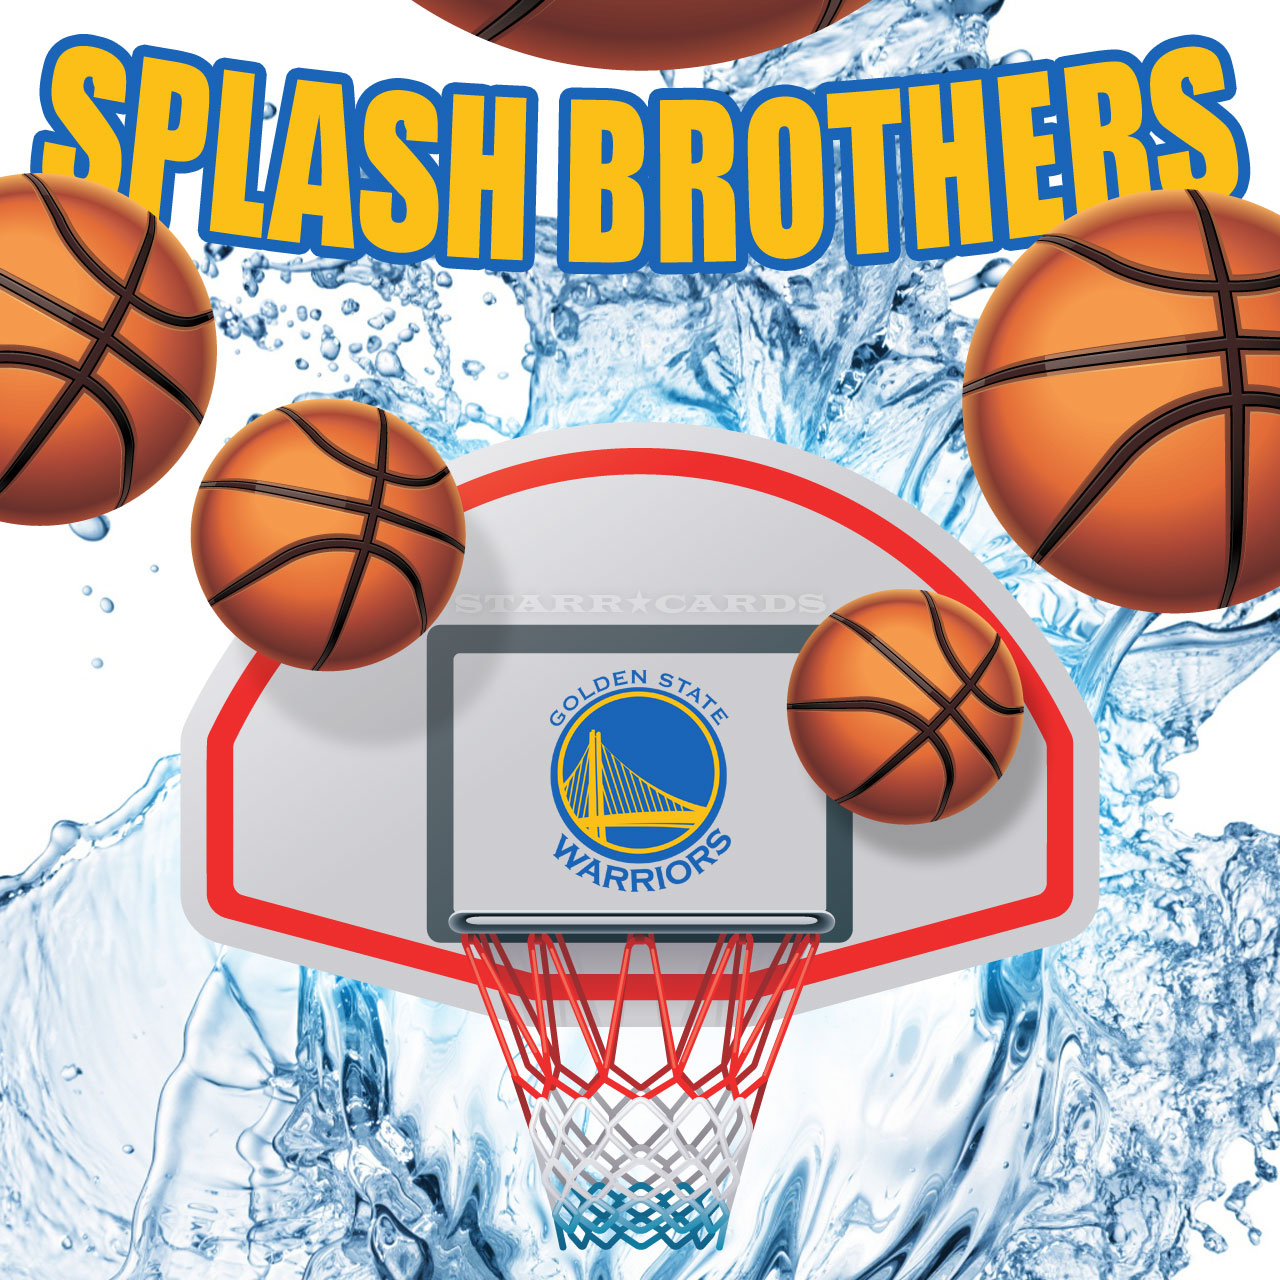 Splash Brothers rain 3-pointers for Golden State Warriors